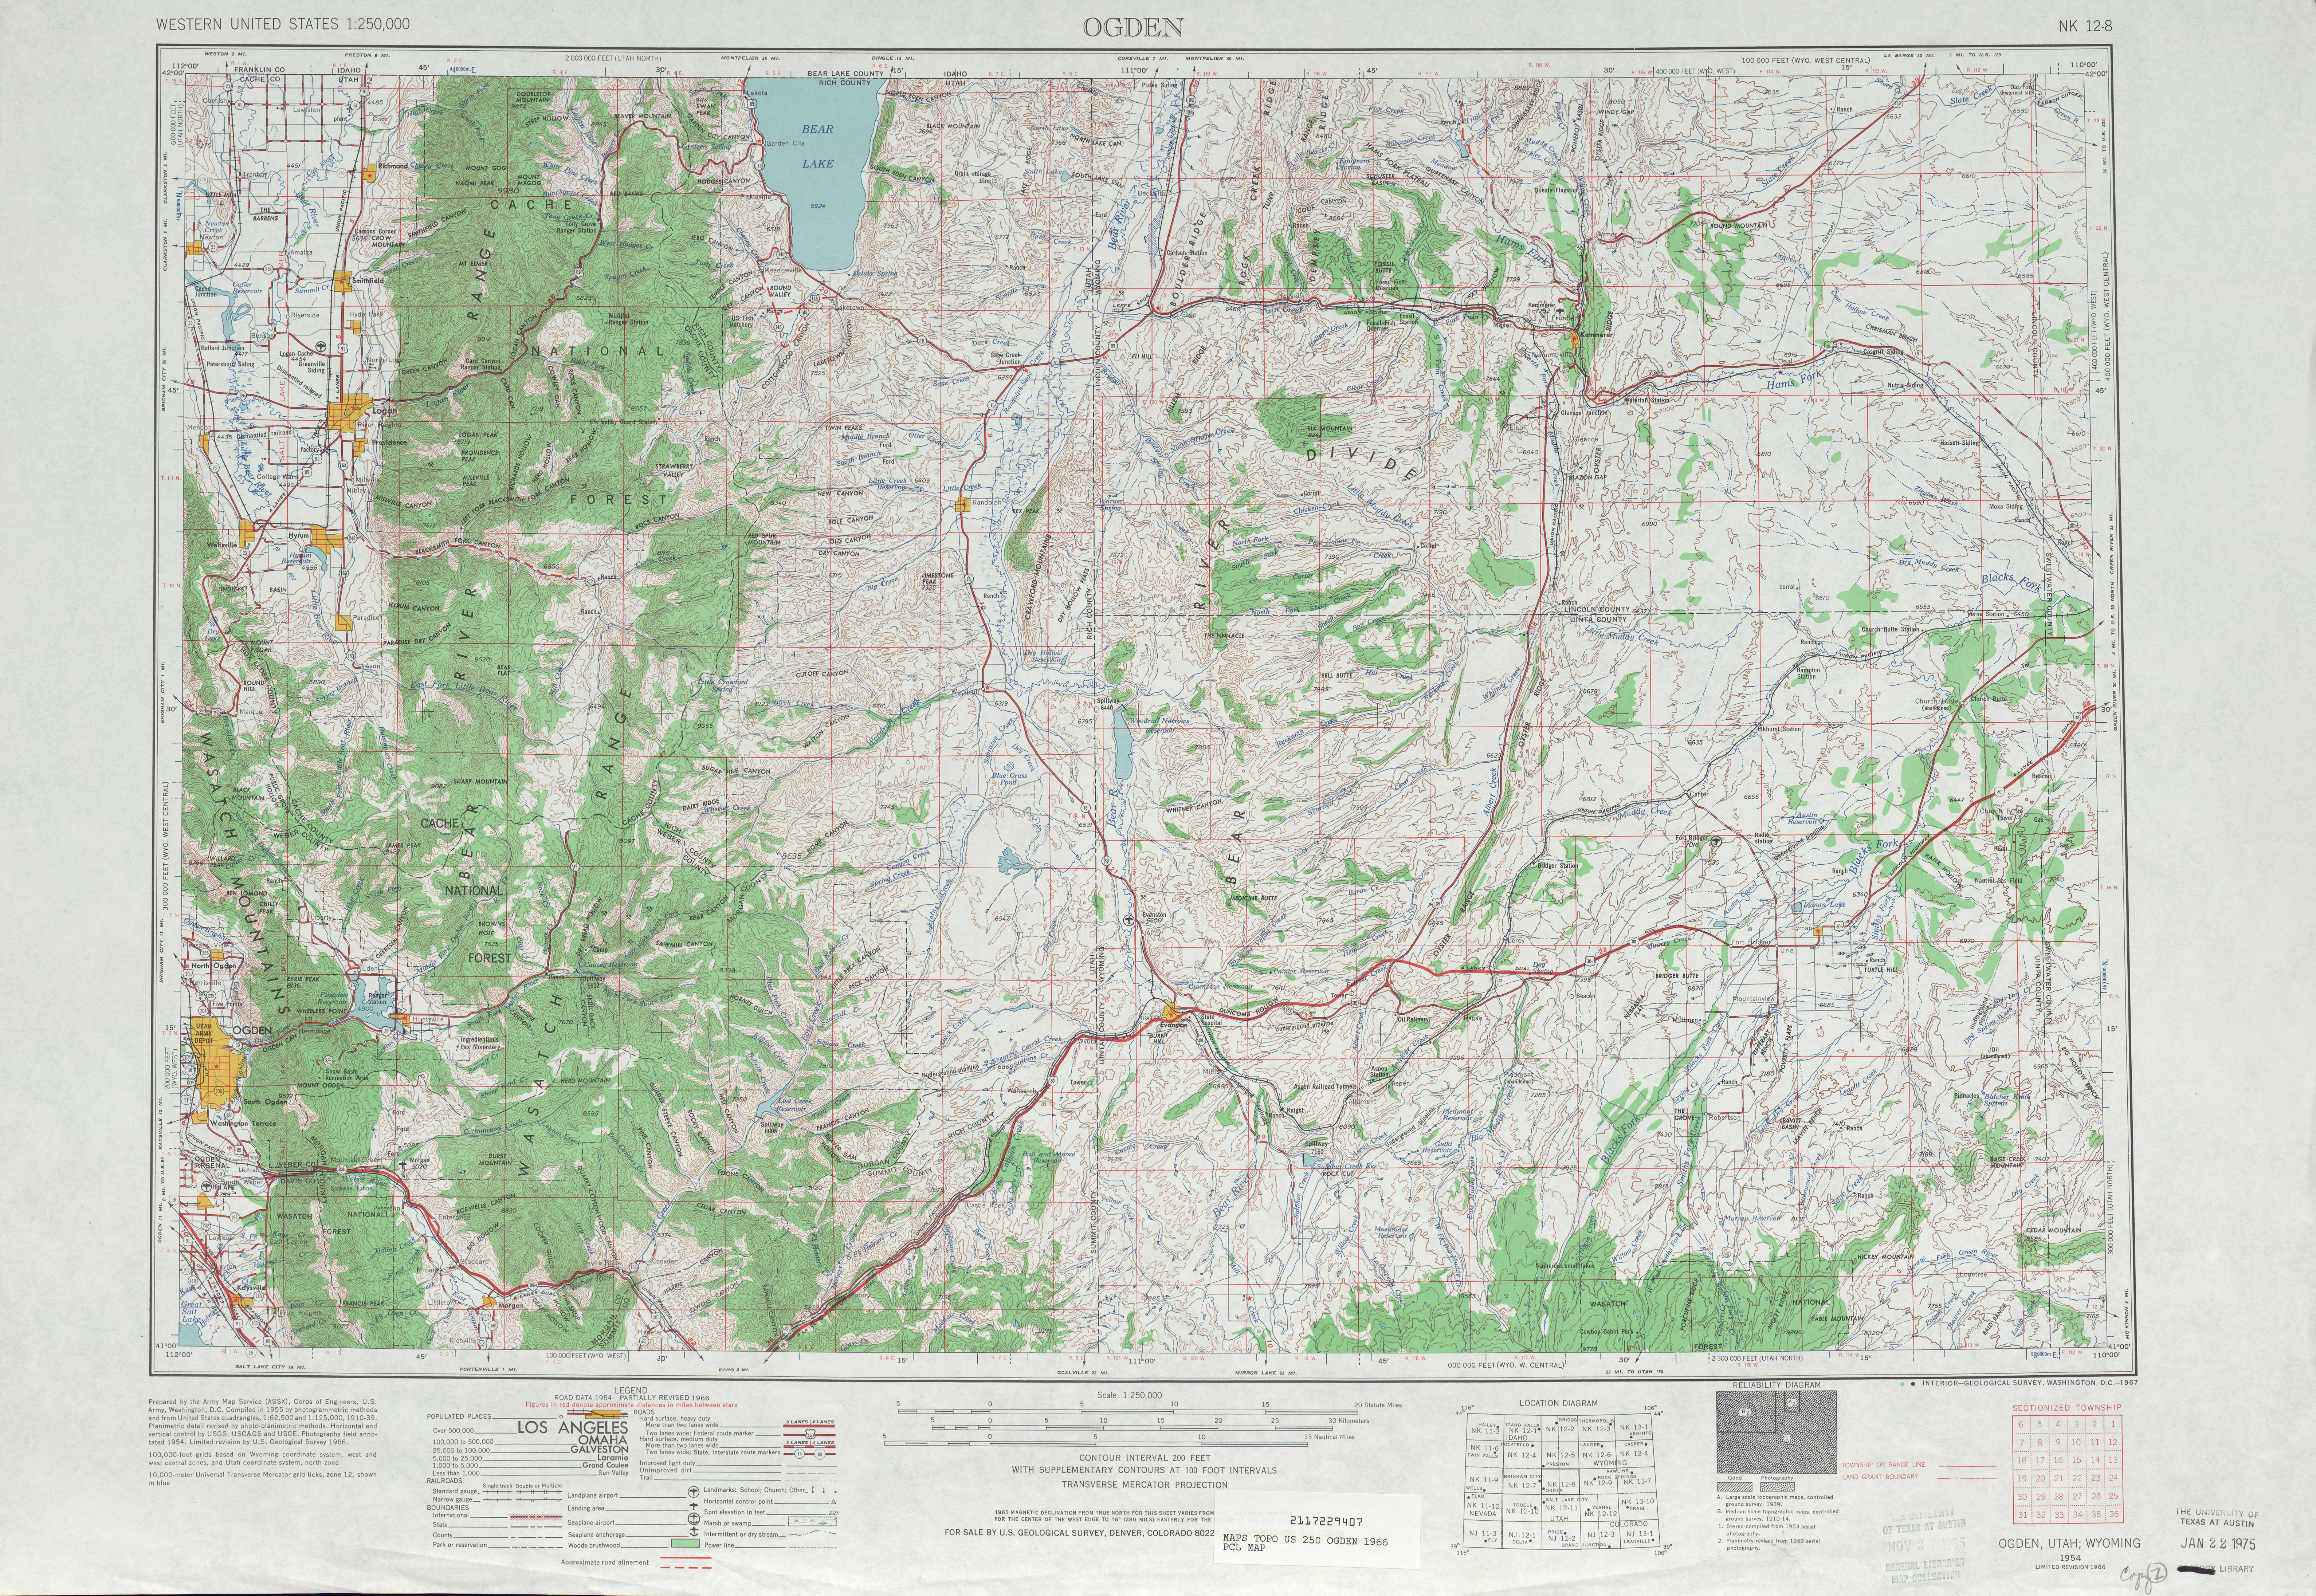 Ogden Topographic Map Sheet, United States 1966